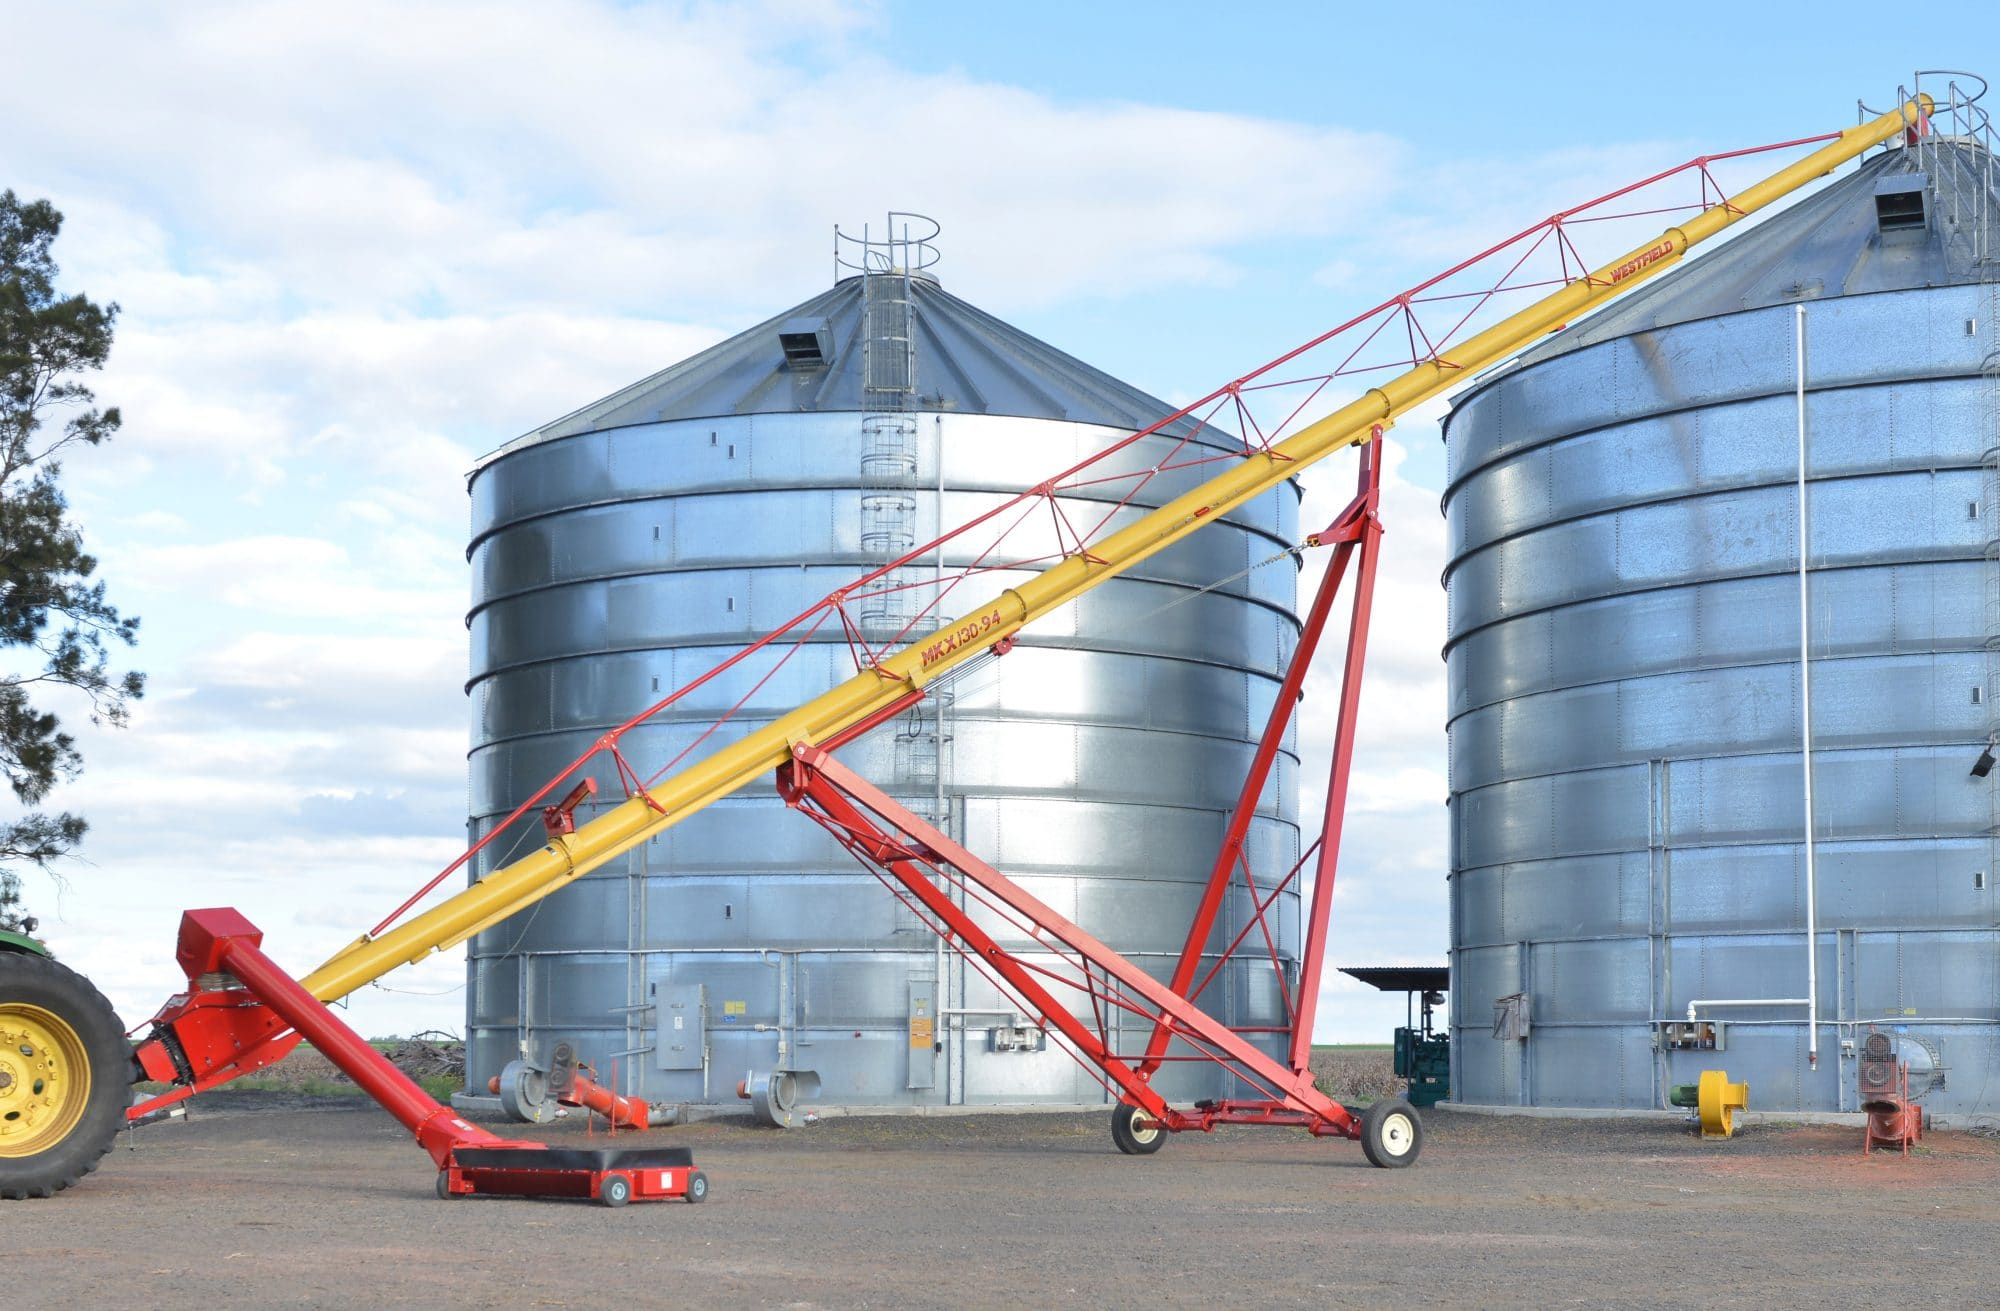 Not all augers are designed and built the same. A high quality grain auger will have hard-wearing features for maximum longevity and ease of use.